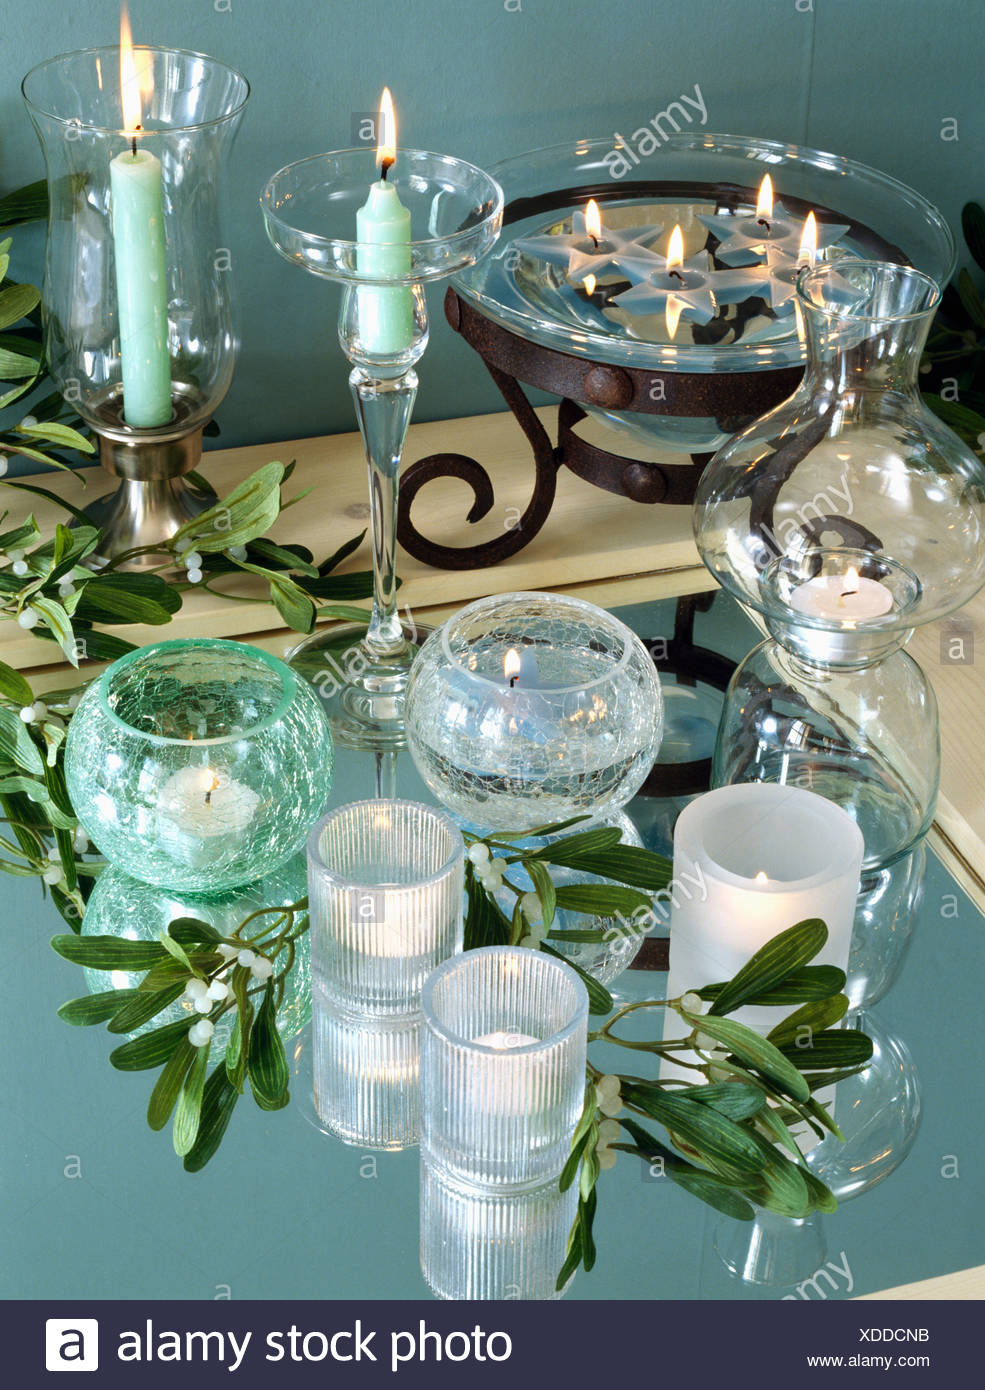 Close-up of glass candle holders and bowl with lighted turquoise and white candles - Stock Image